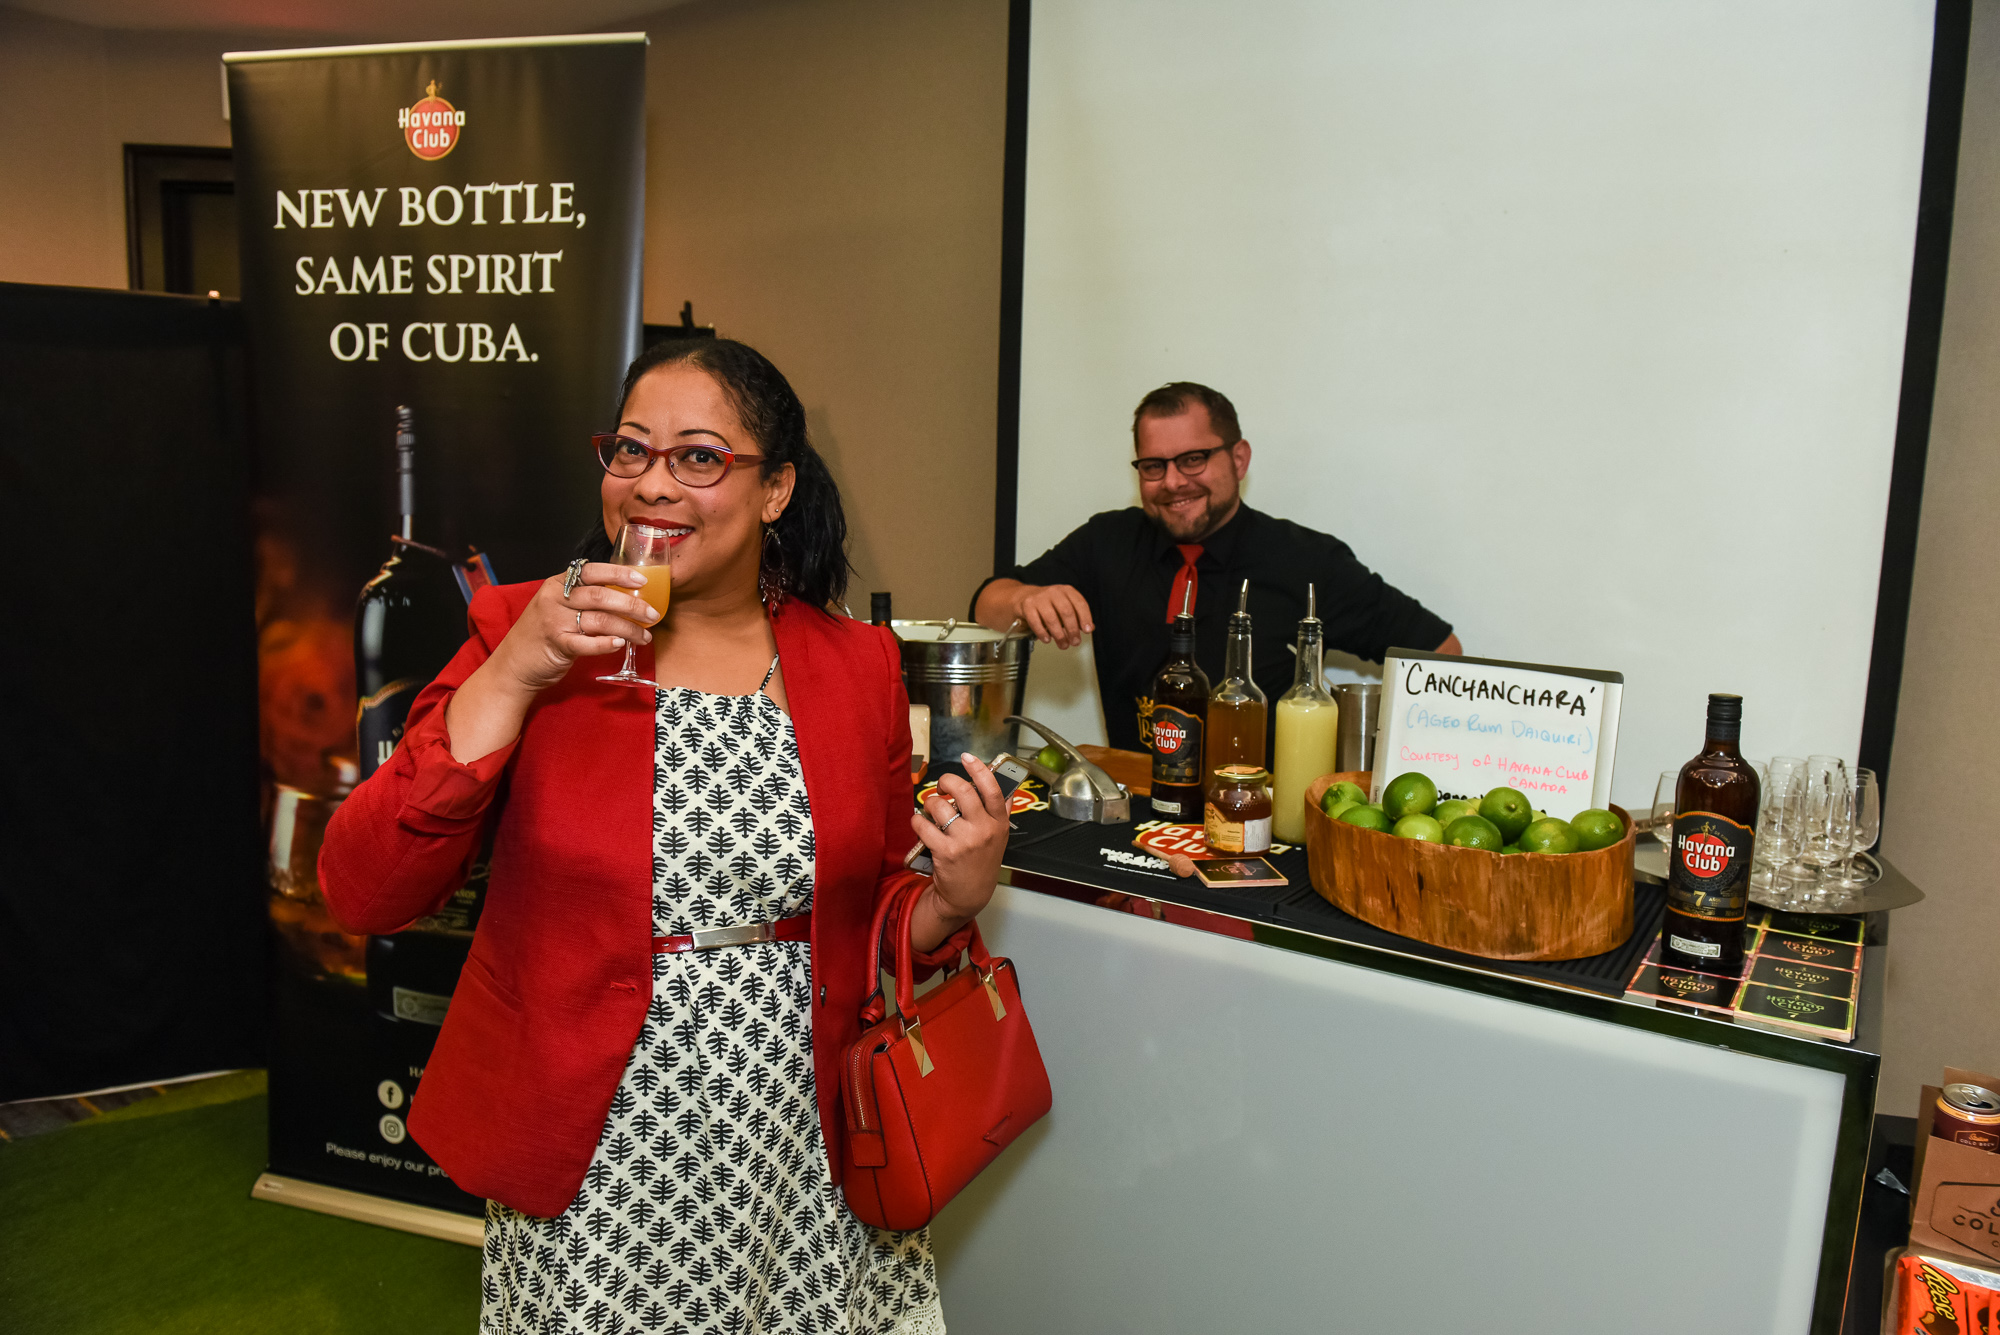 Janelle from The Scene in TO enjoys here Havana Club cocktail Photo: Nick Wons